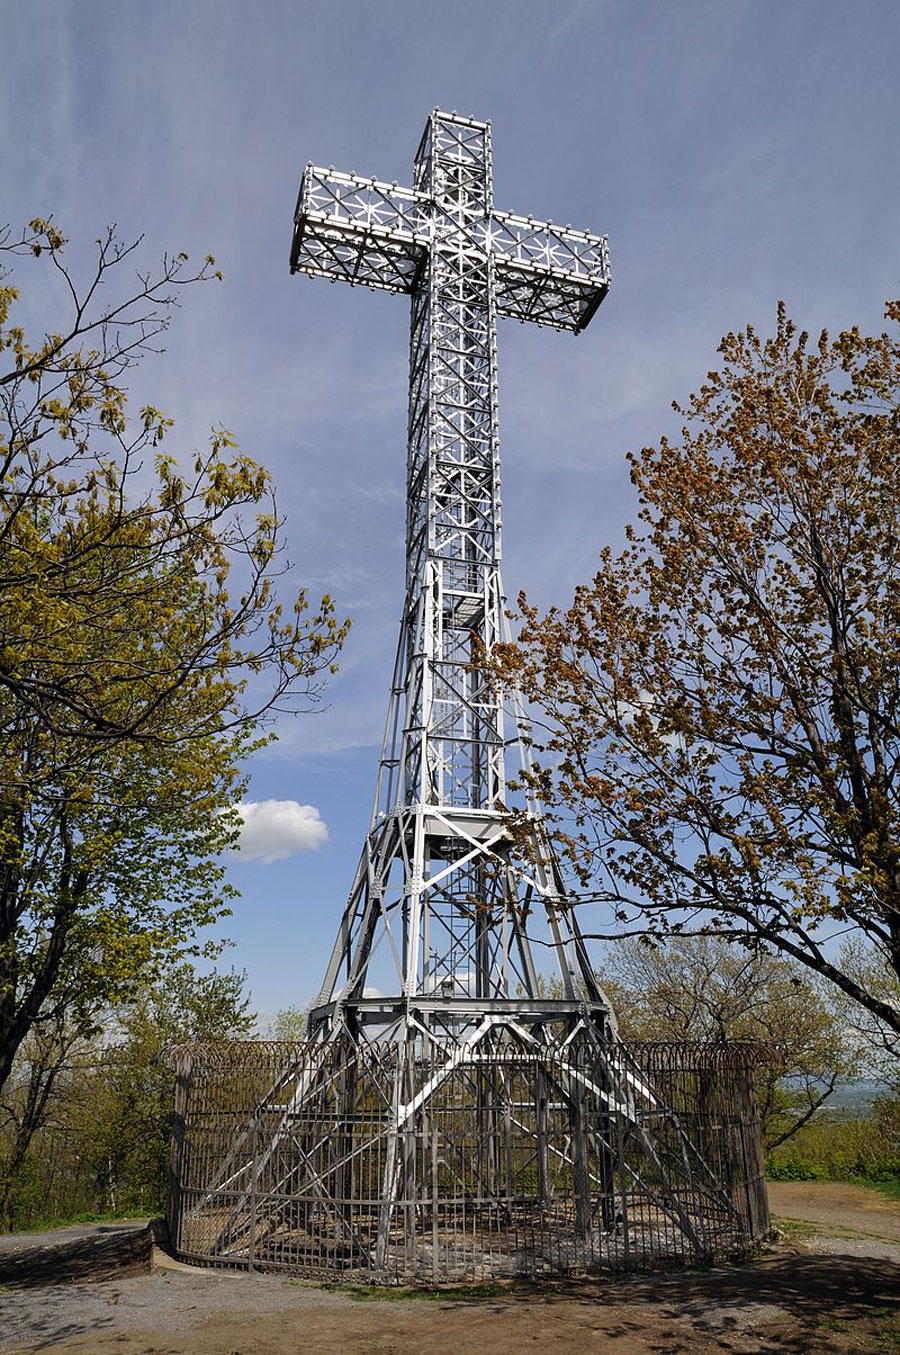 Mount Royal Cross is a monument on top of Mount Royal in Montreal, Quebec, Canada